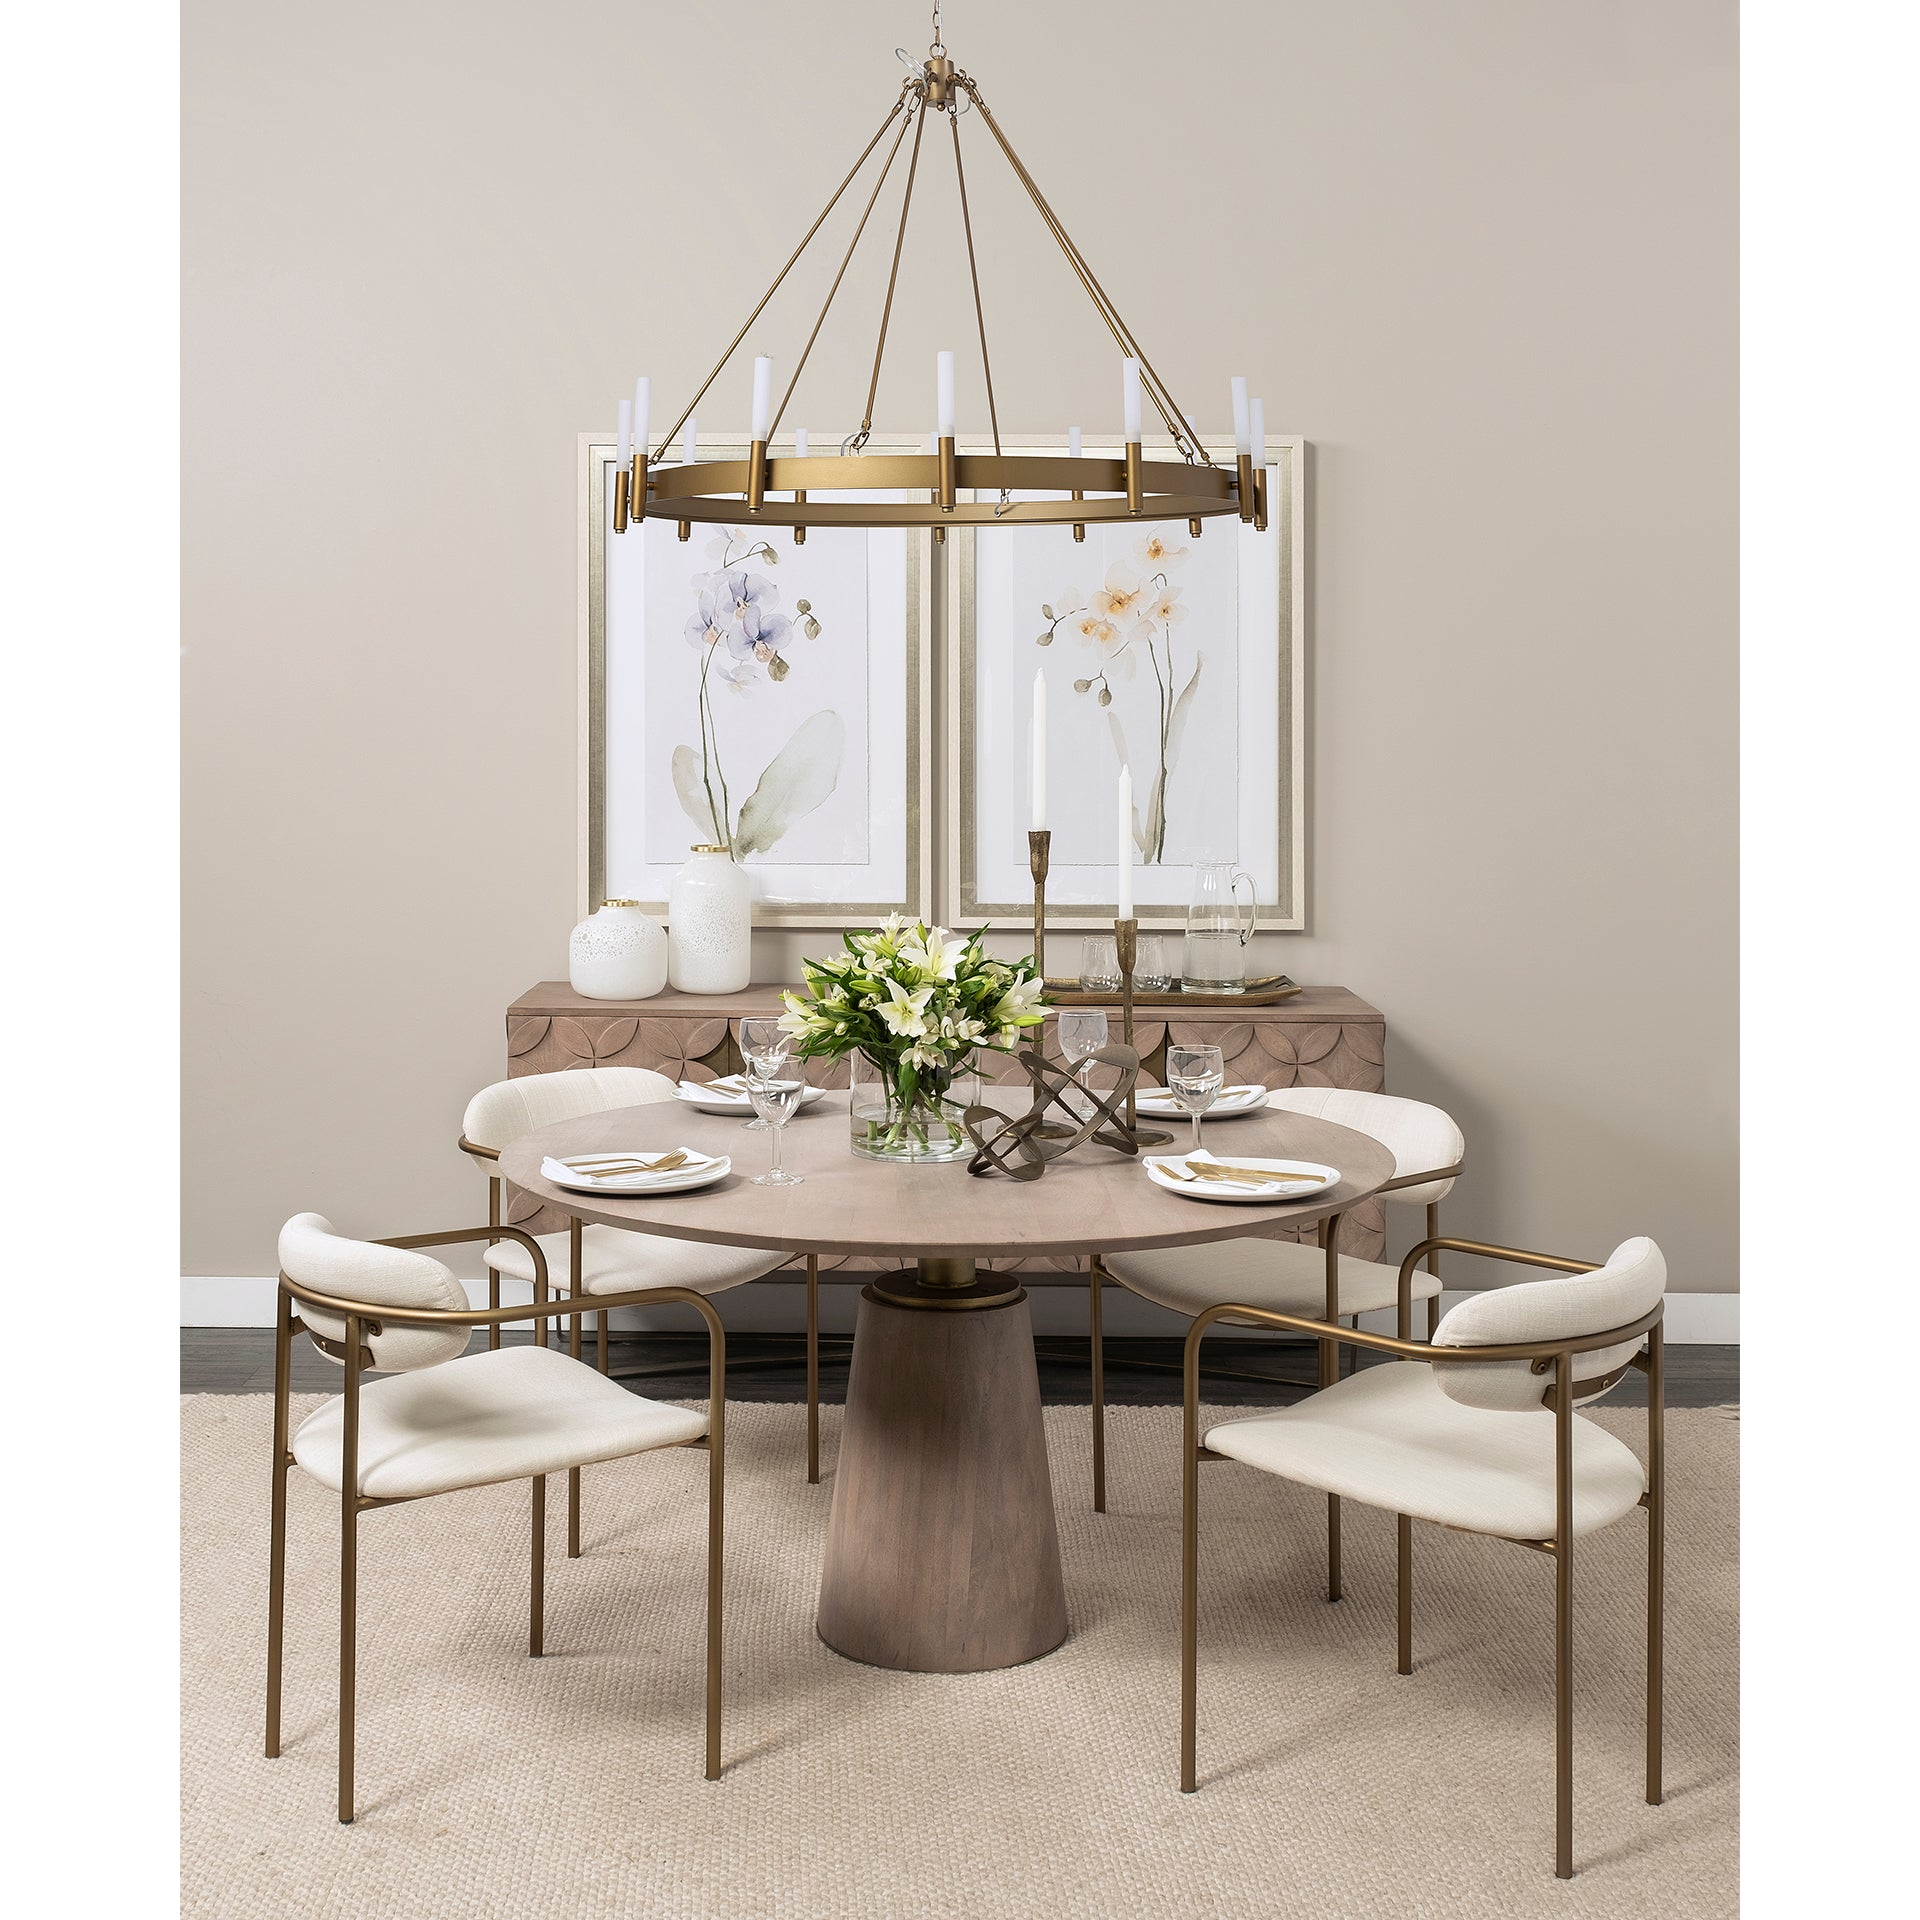 "Maxwell II 54"" Round Brown Solid Wood Top Dining Table 